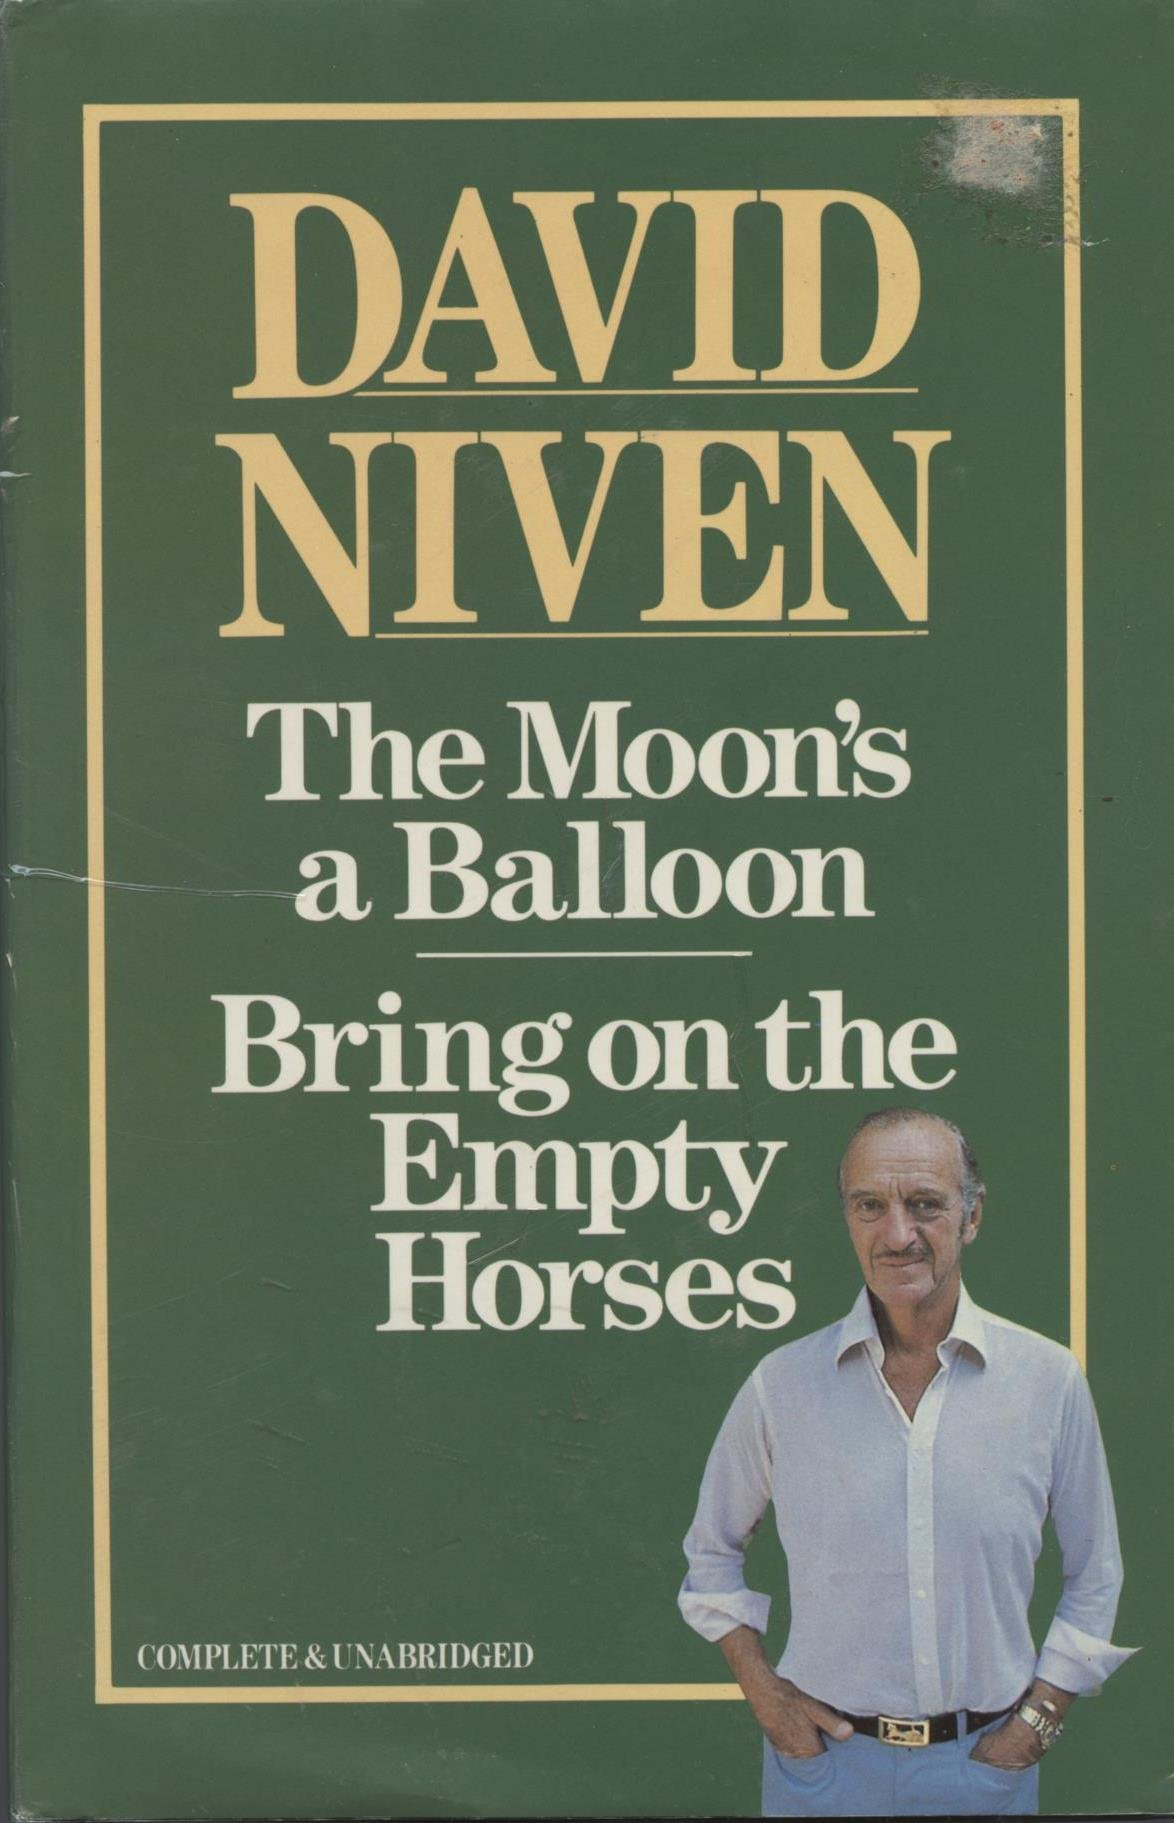 Image result for The moon's a balloon amazon